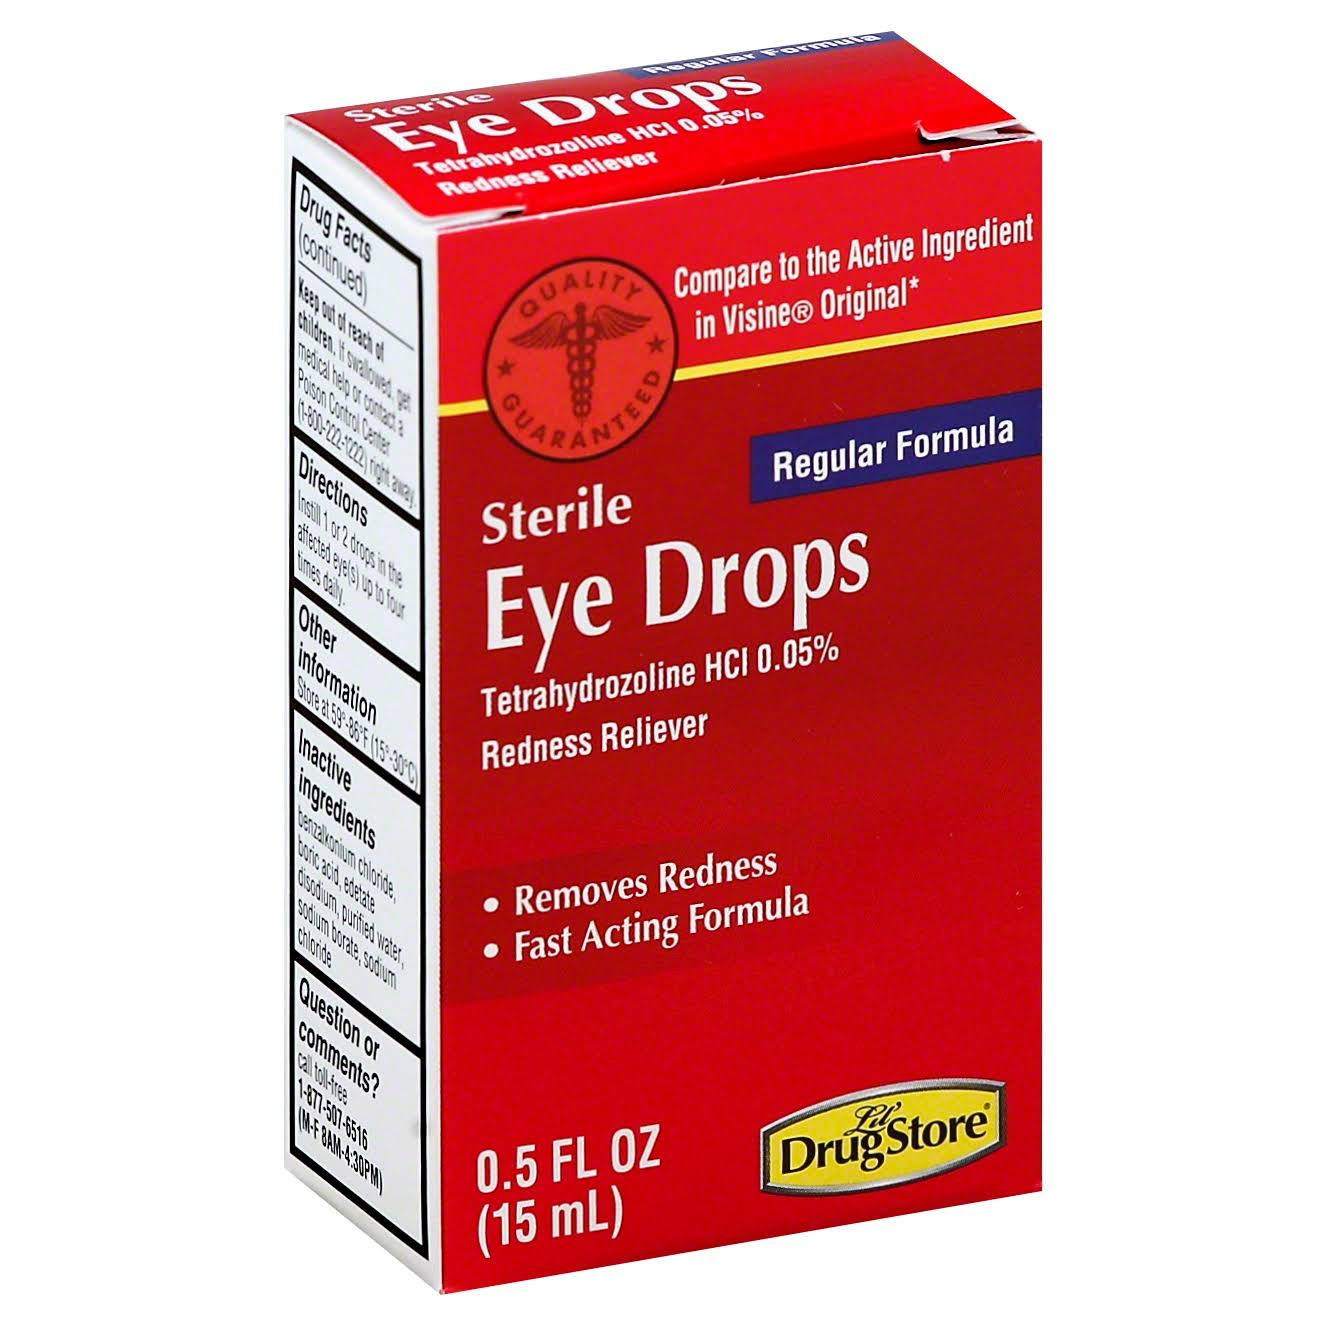 Lil Drug Store Eye Drops, Regular Formula - 0.5 fl oz